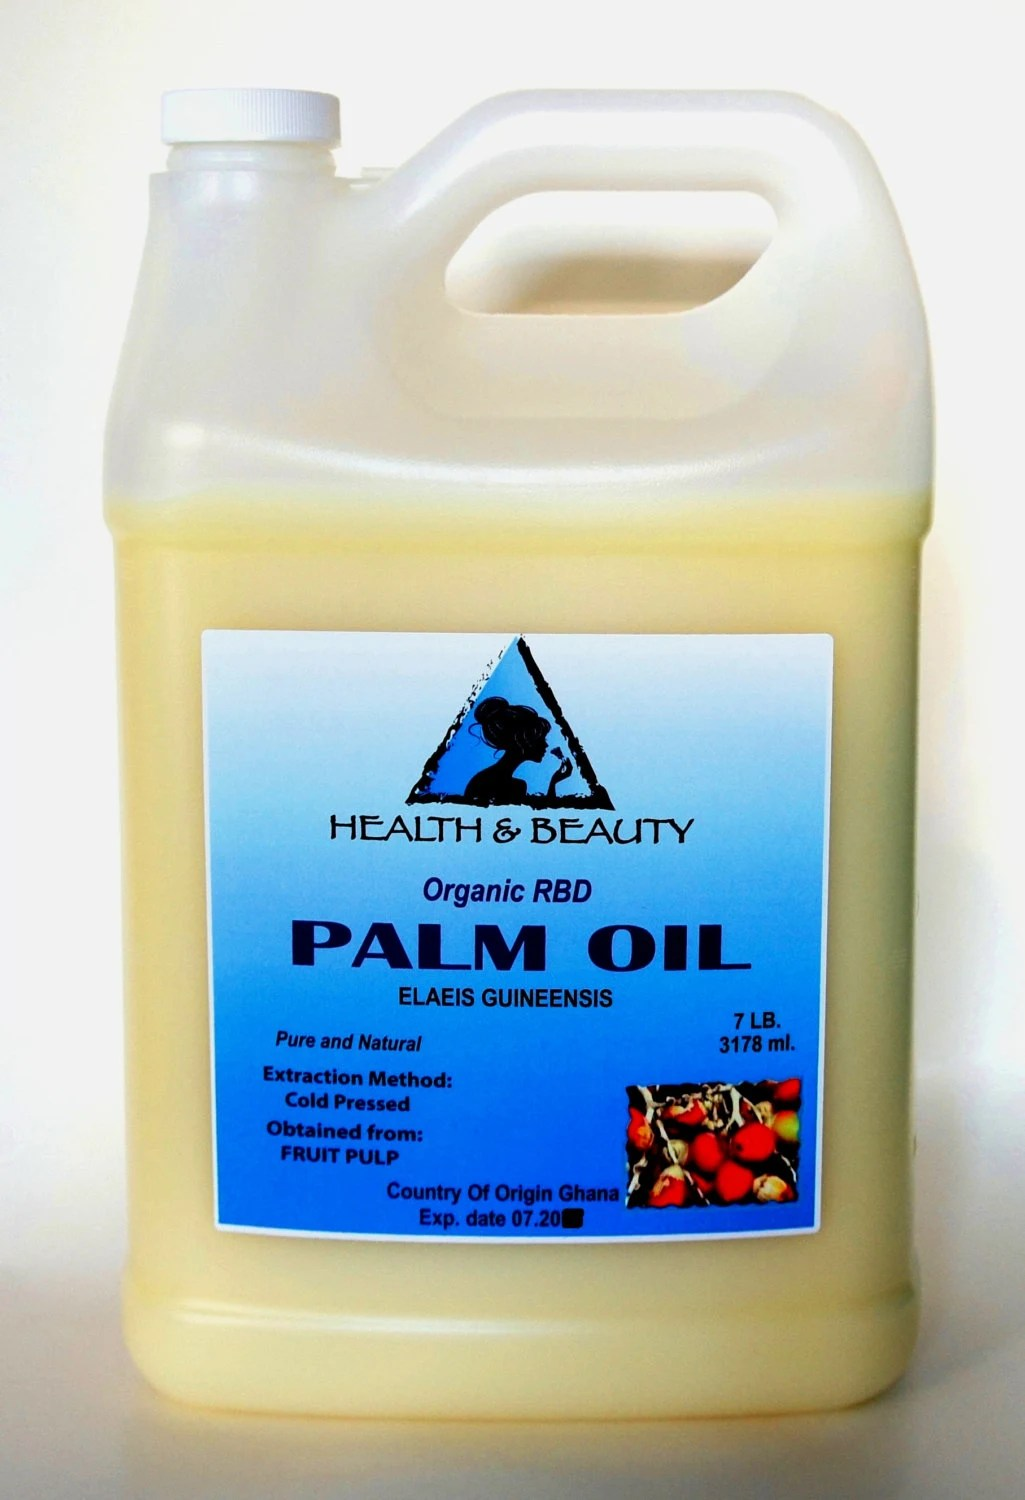 7 Lb 1 gal PALM OIL RBD Organic Carrier Cold Pressed Pure